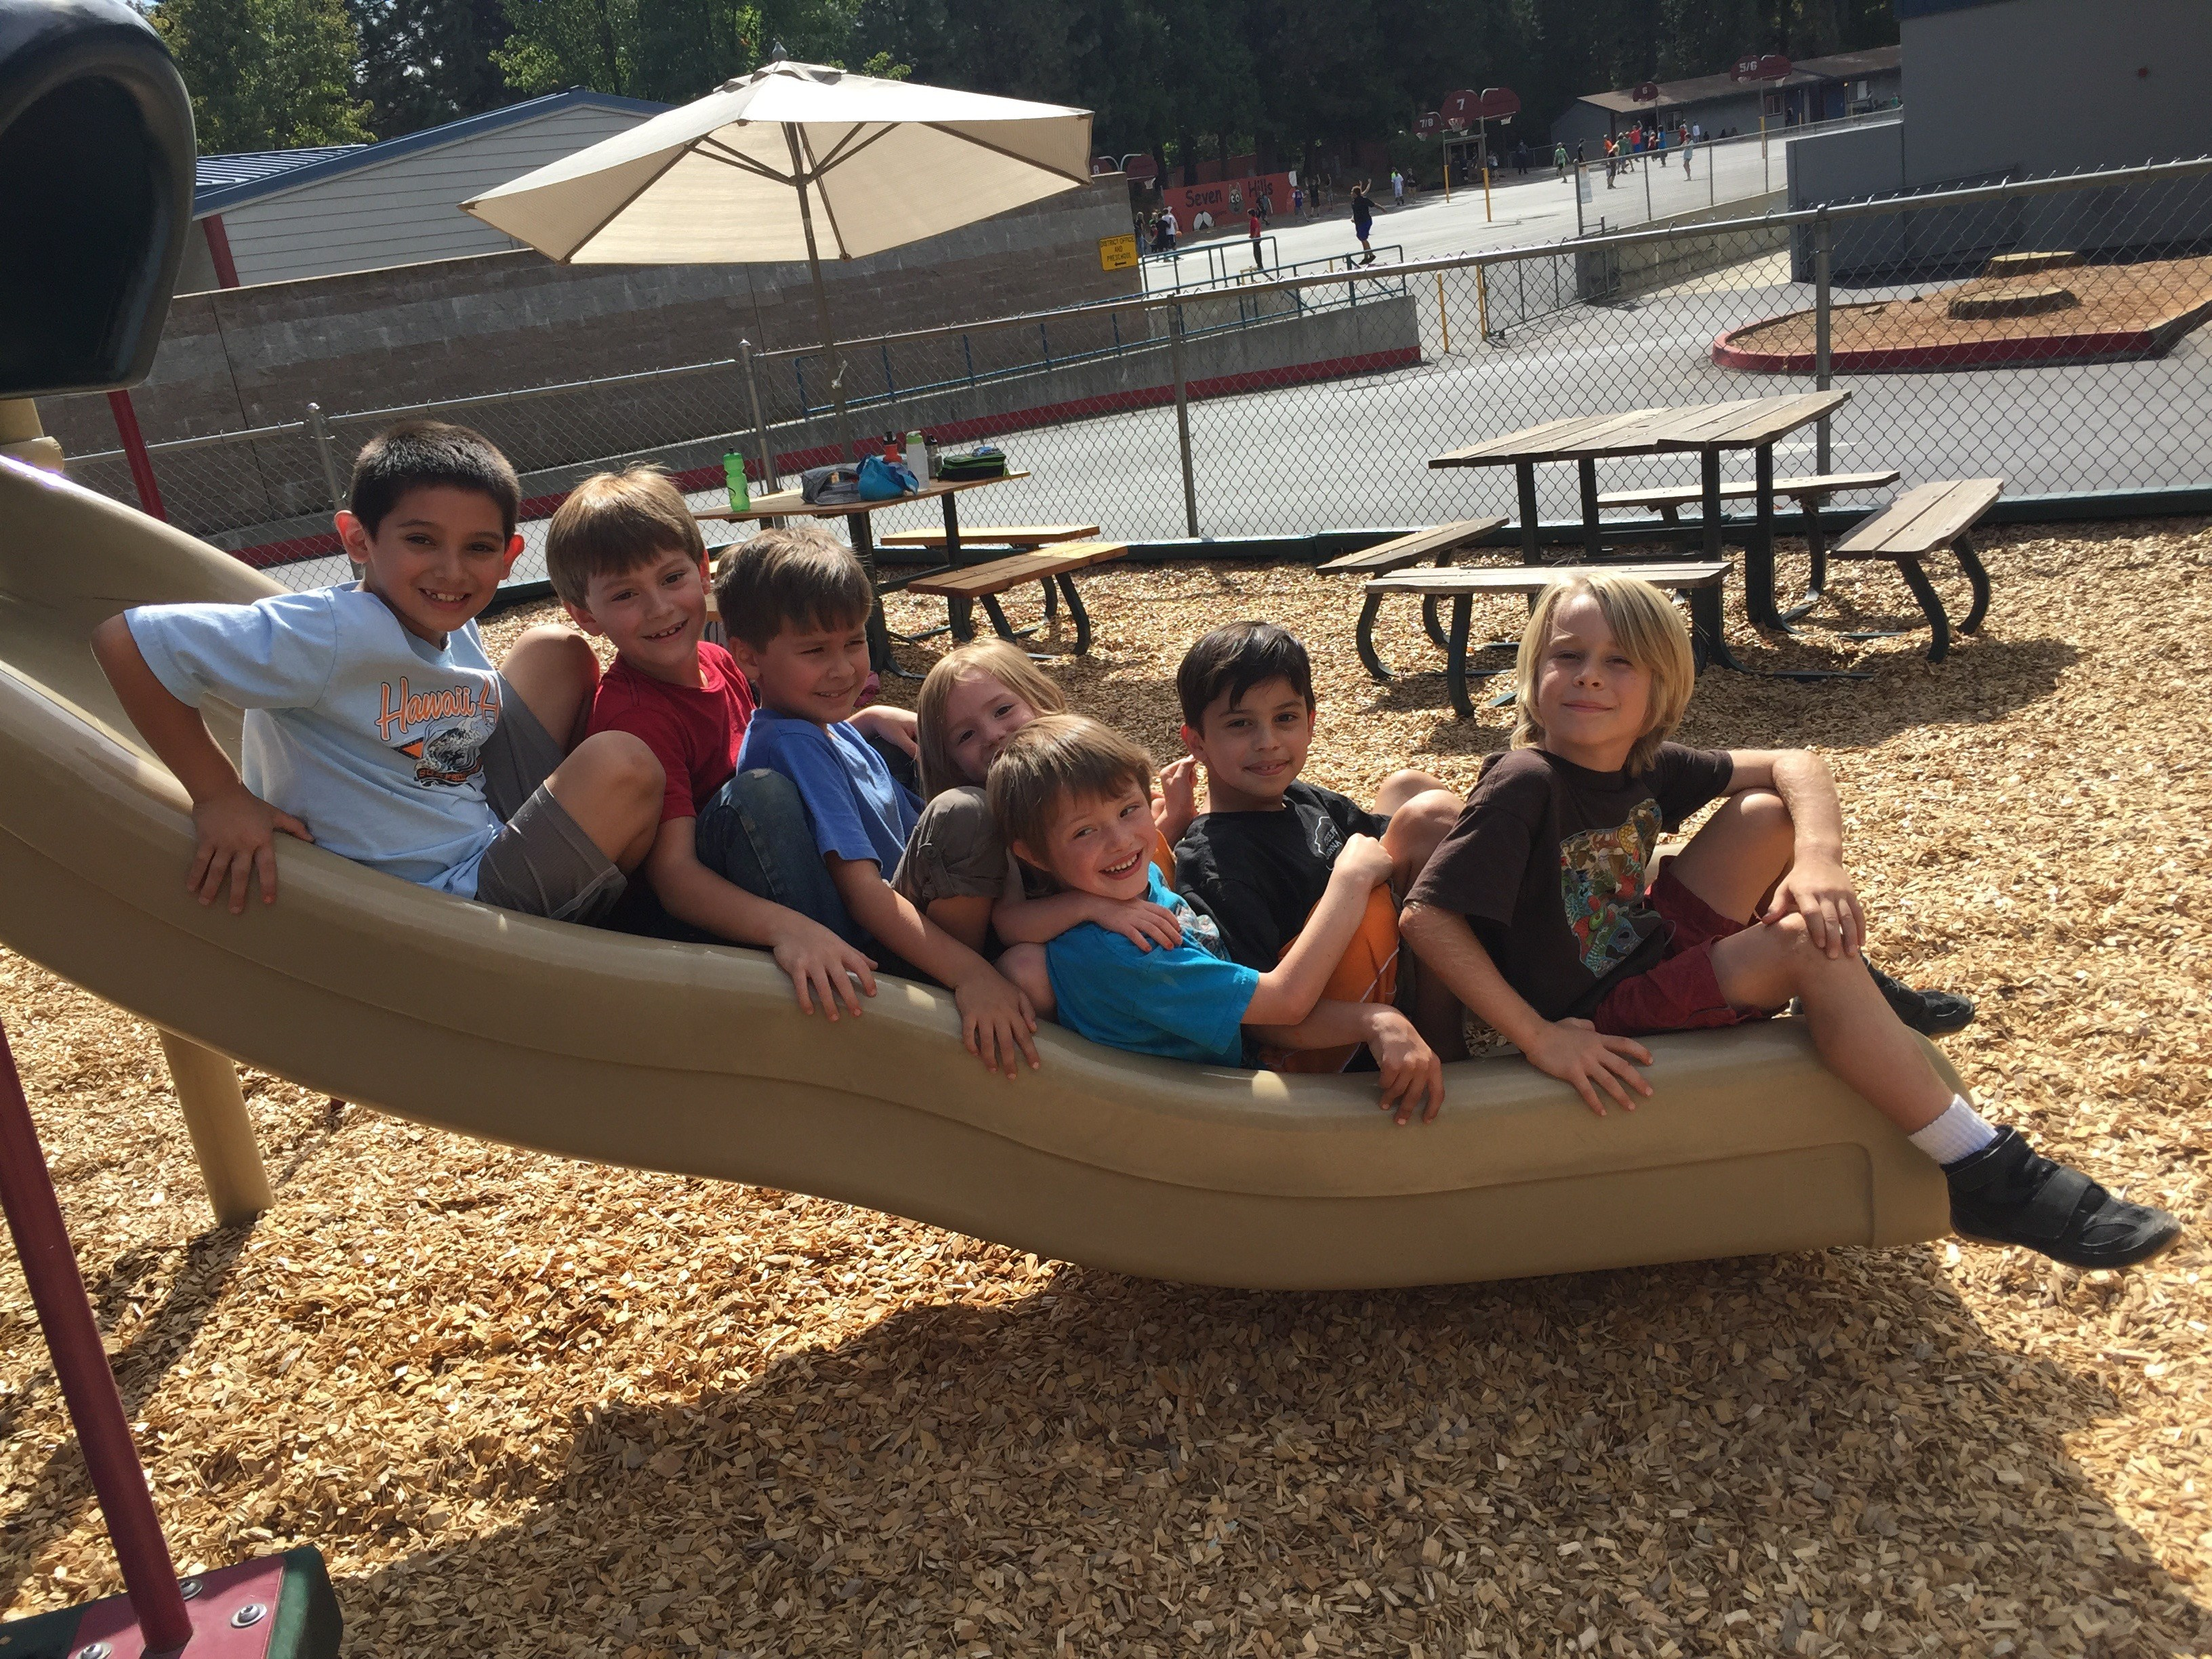 Students smiling on slide